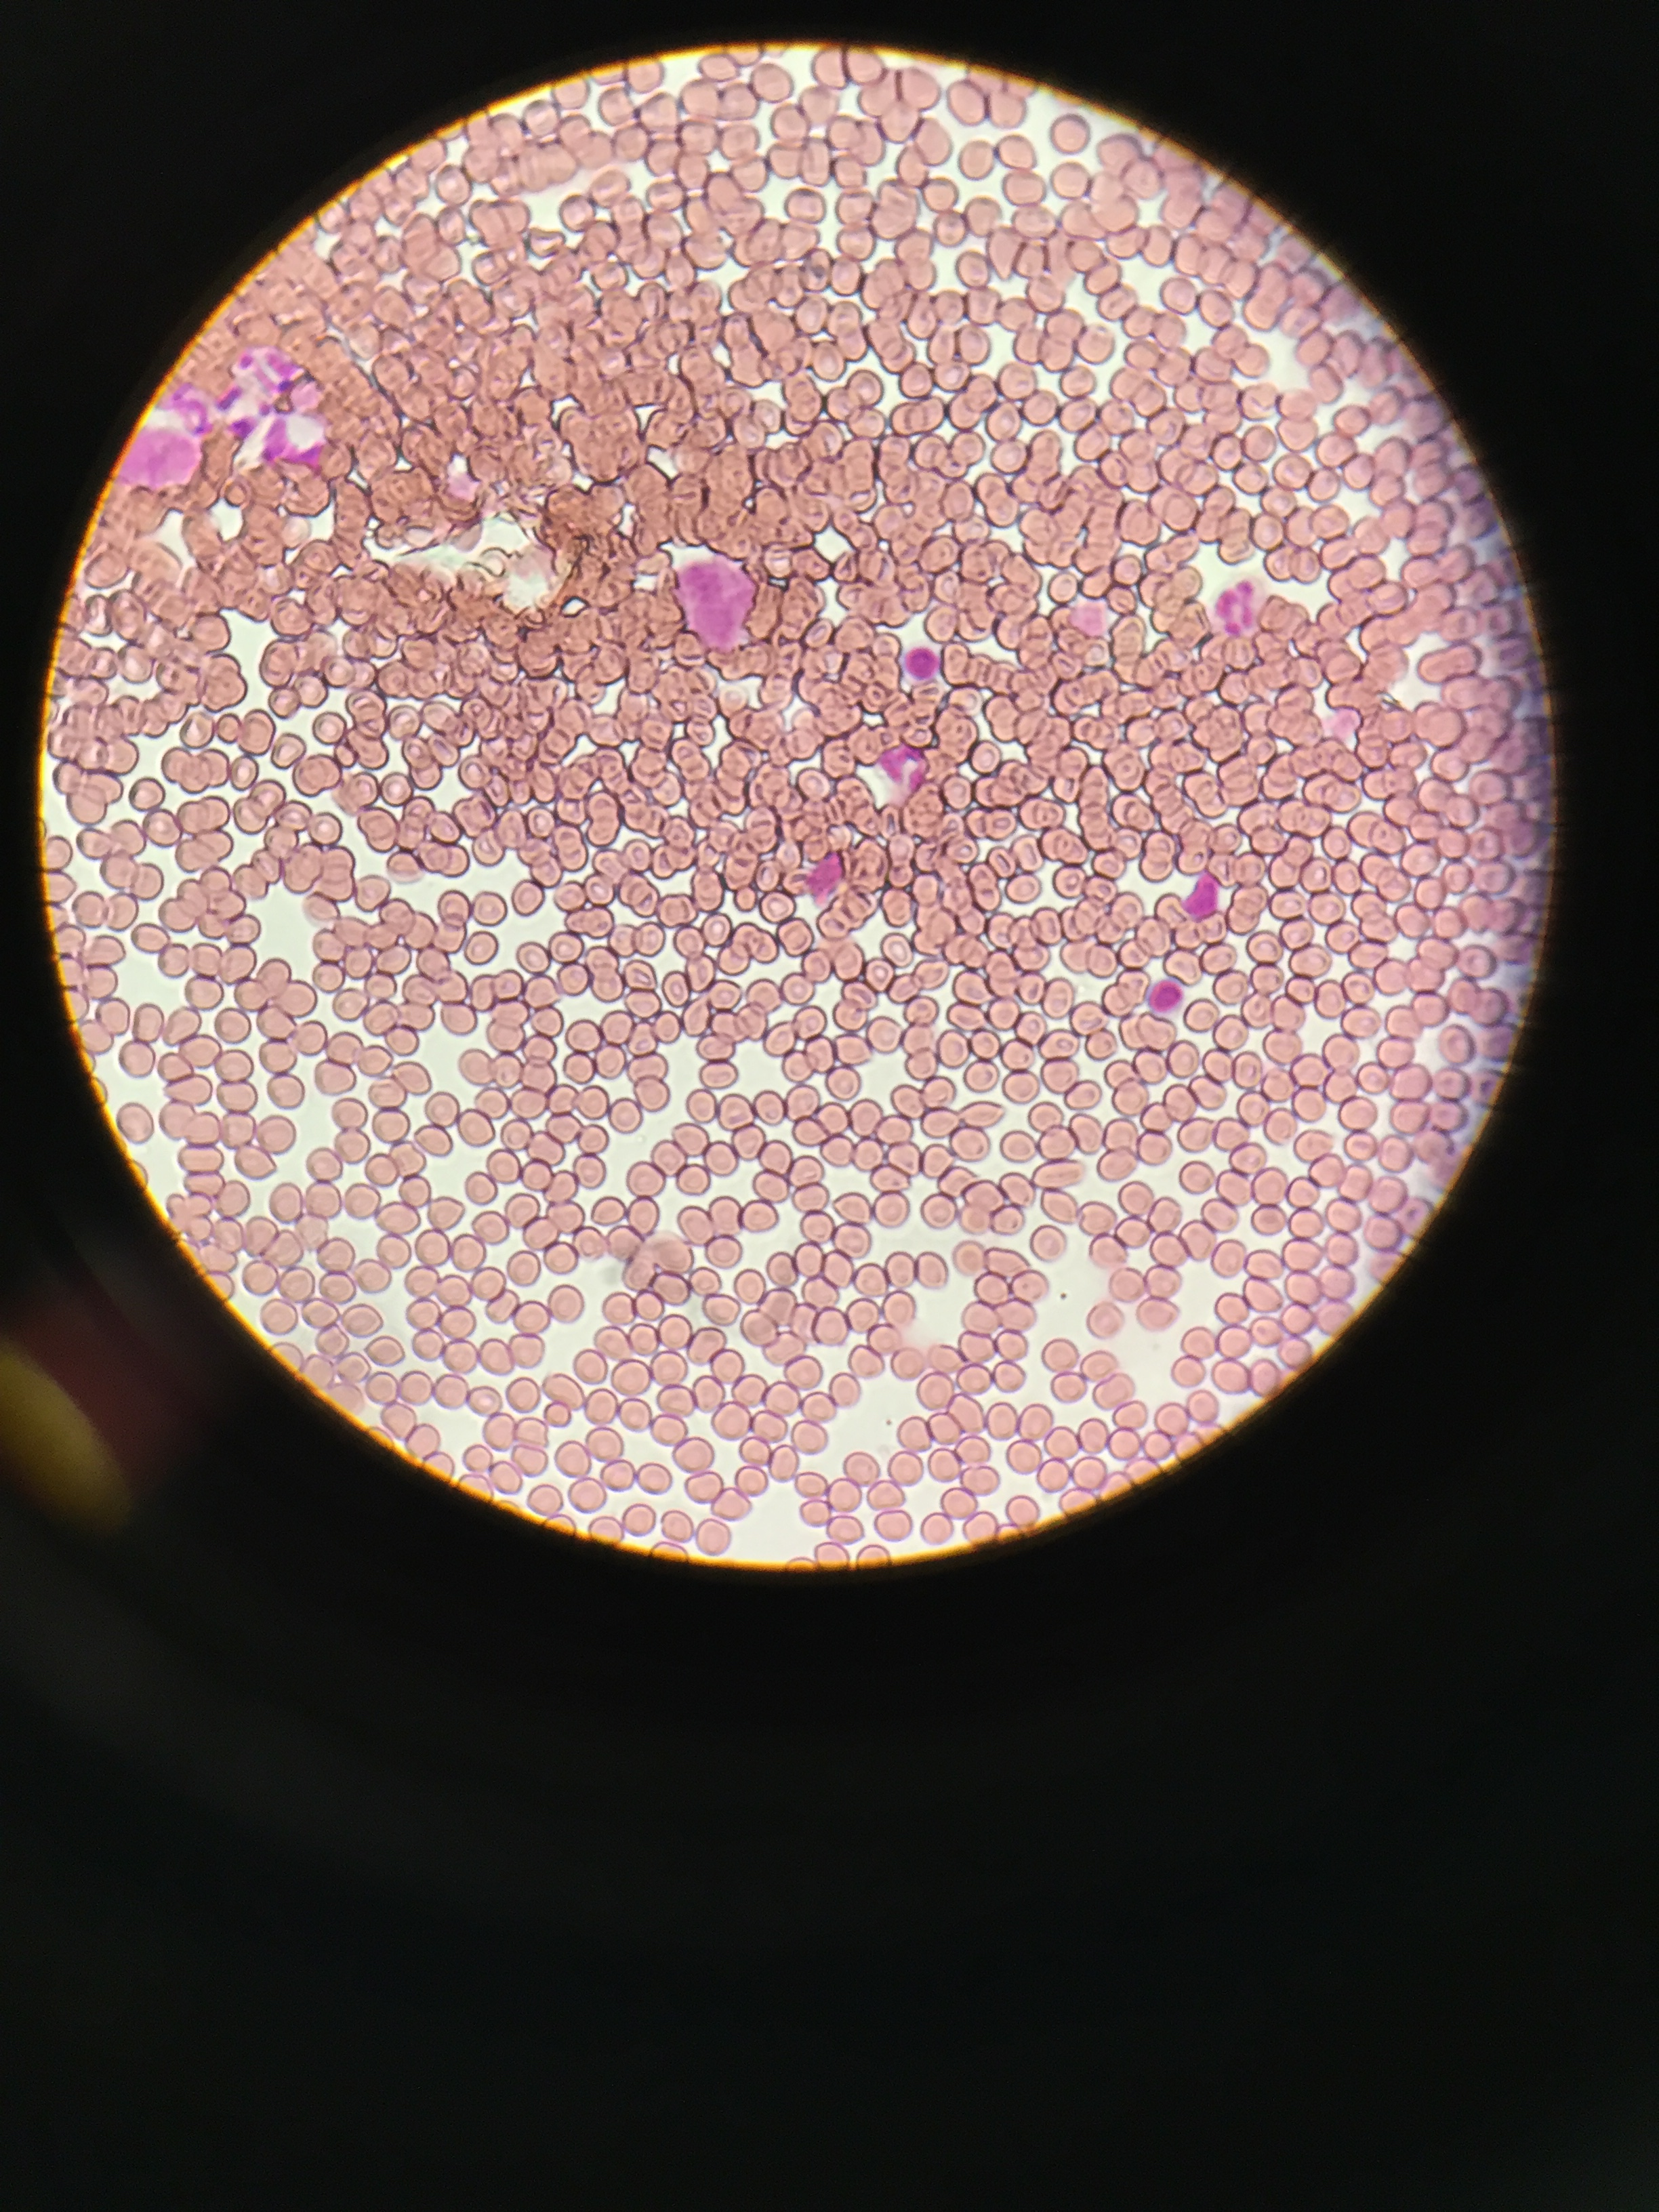 My red red blood cells, advanced nutrition lab